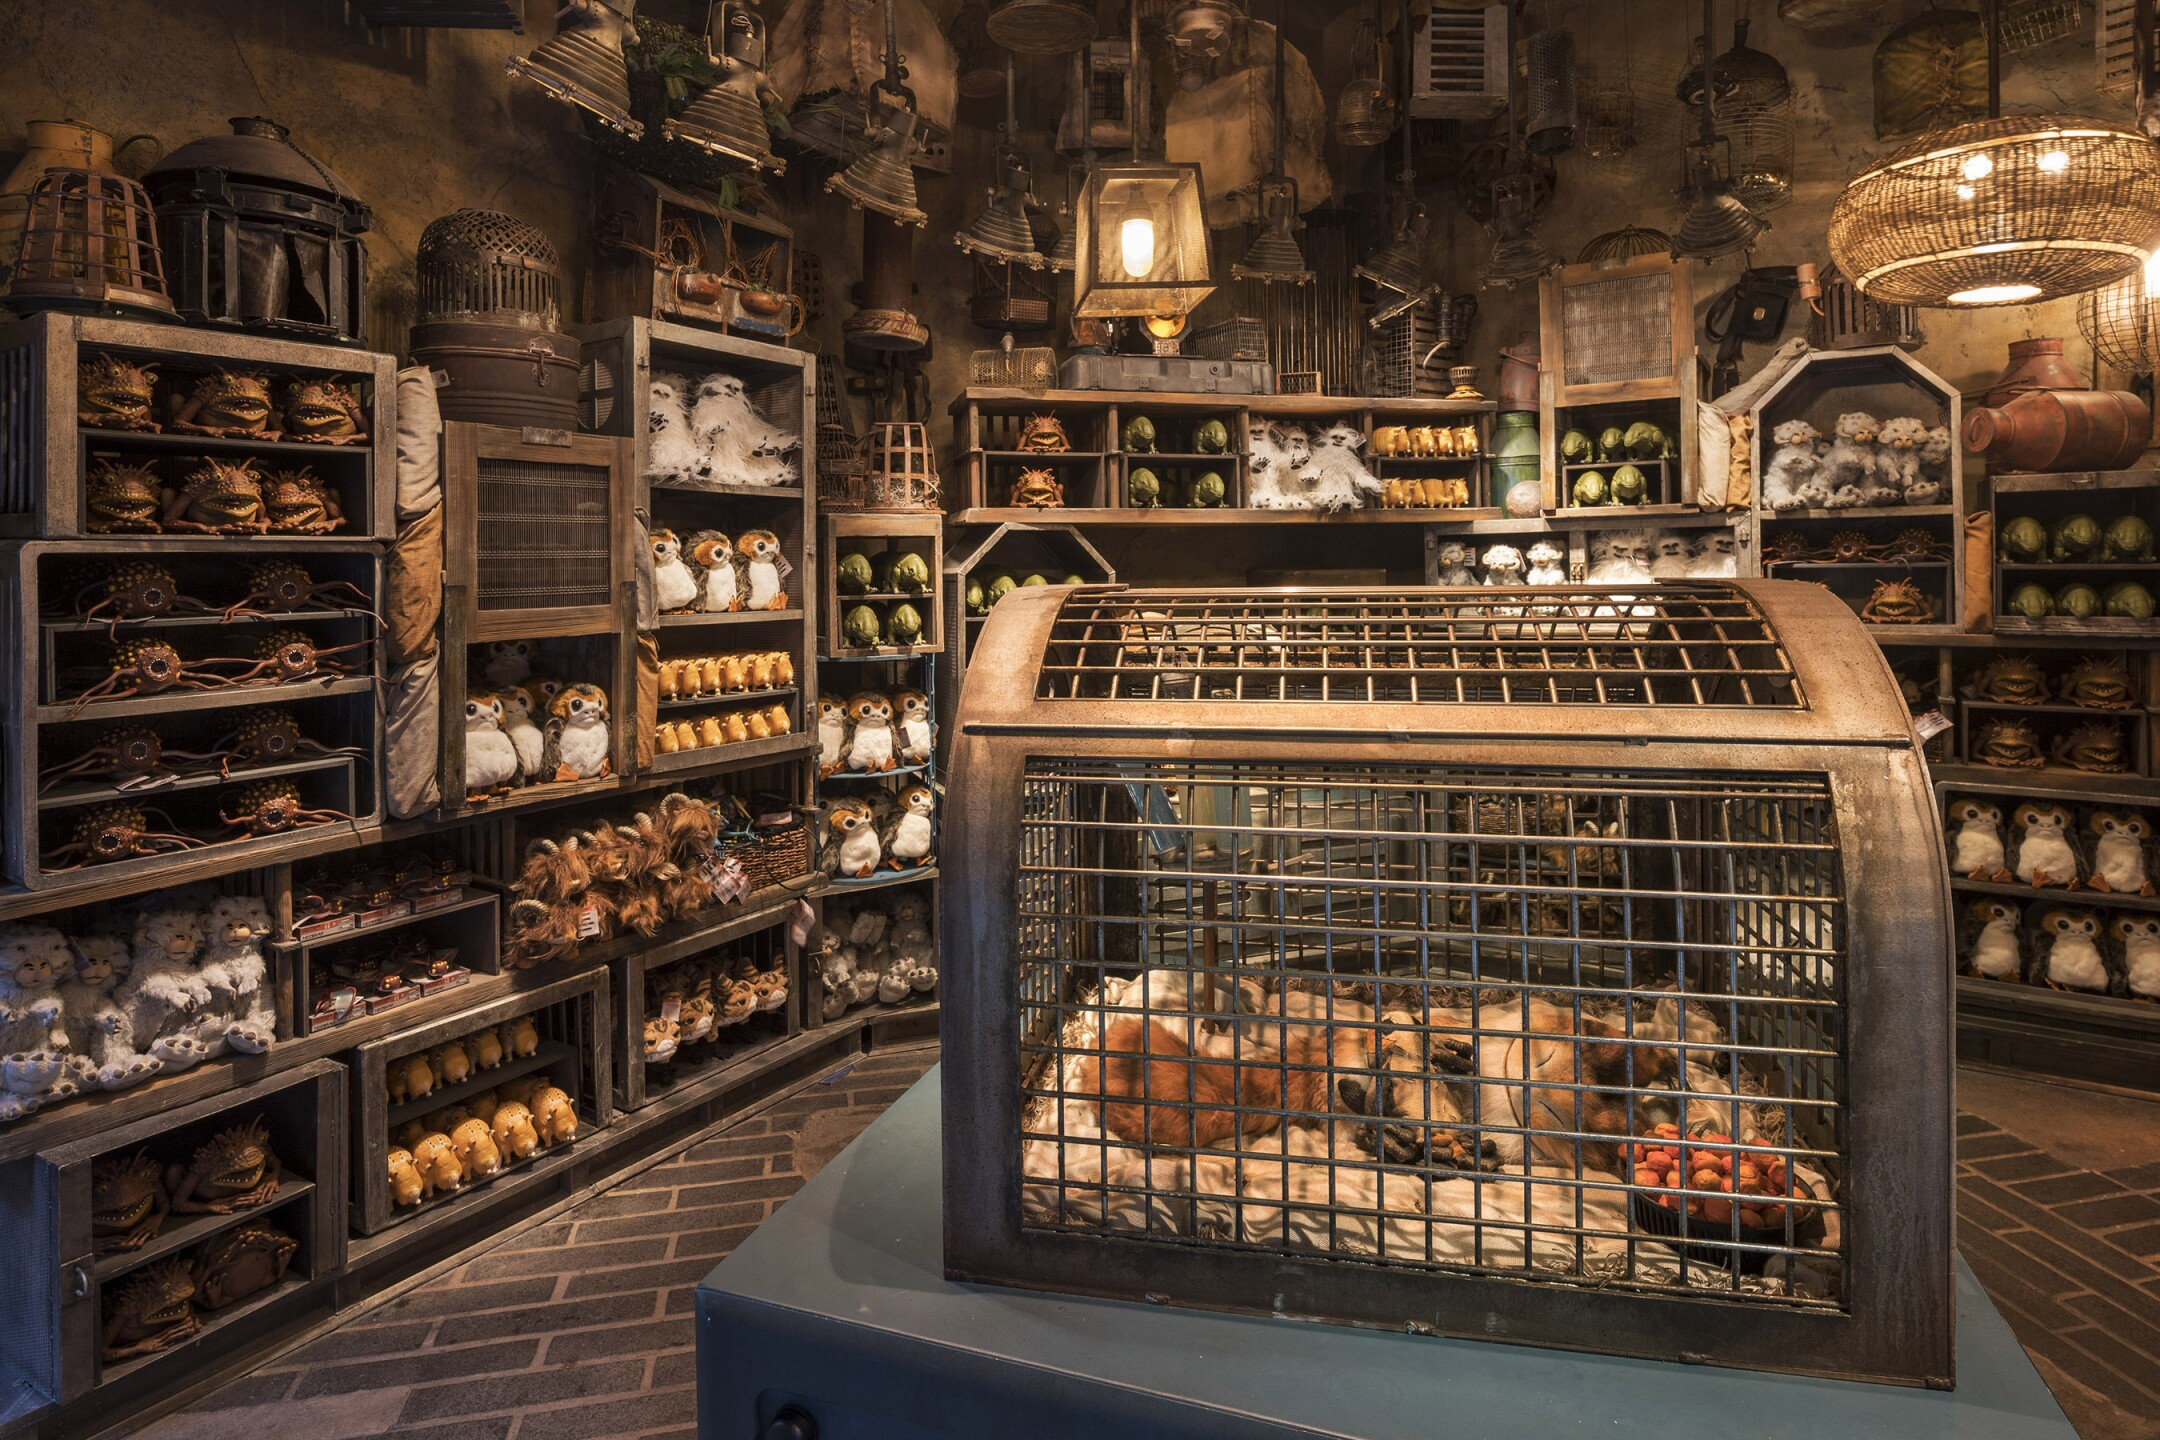 Creature Stall at Star Wars: Galaxy's Edge